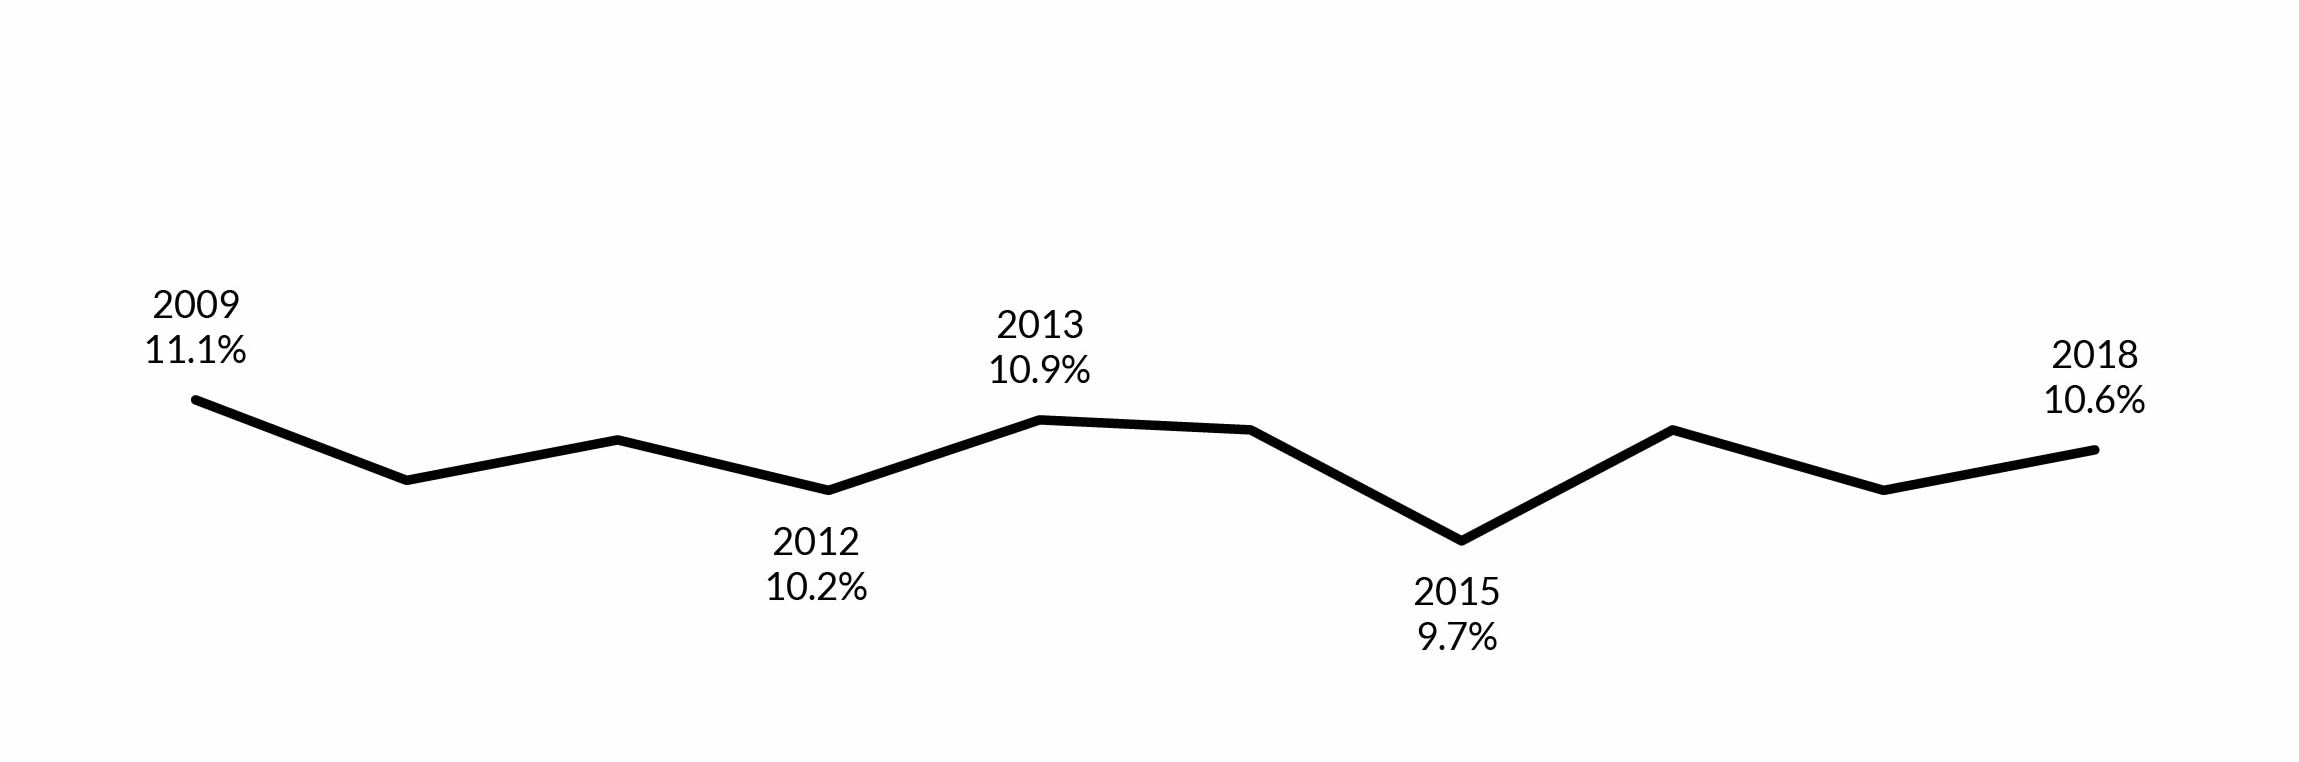 Poverty rose to 10.6% in 2018, continuing an increasing trend in poverty since 2015, when poverty reached its lowest point since the Great Recession.